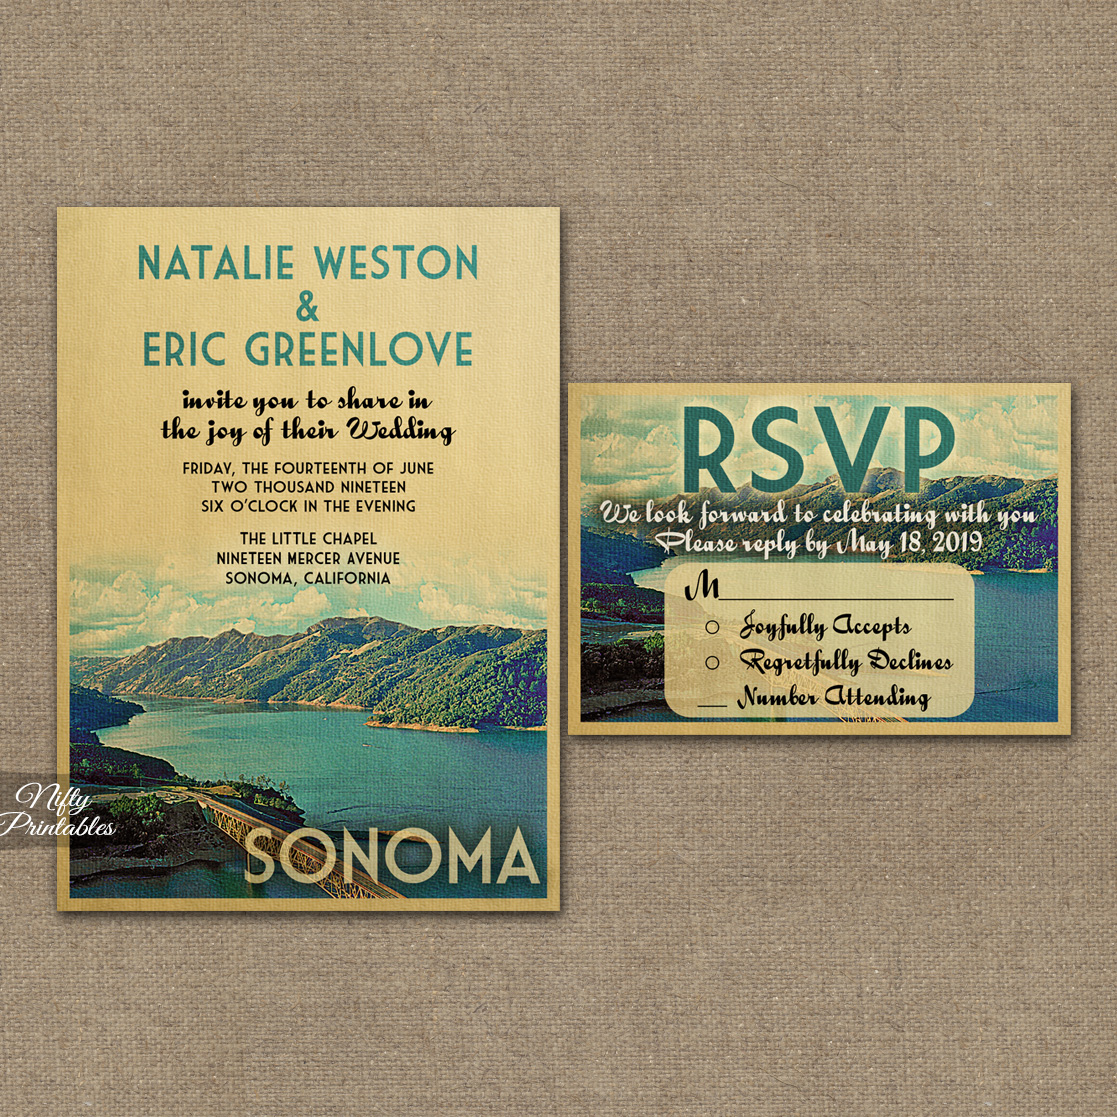 Sonoma Wedding Invitations VTW